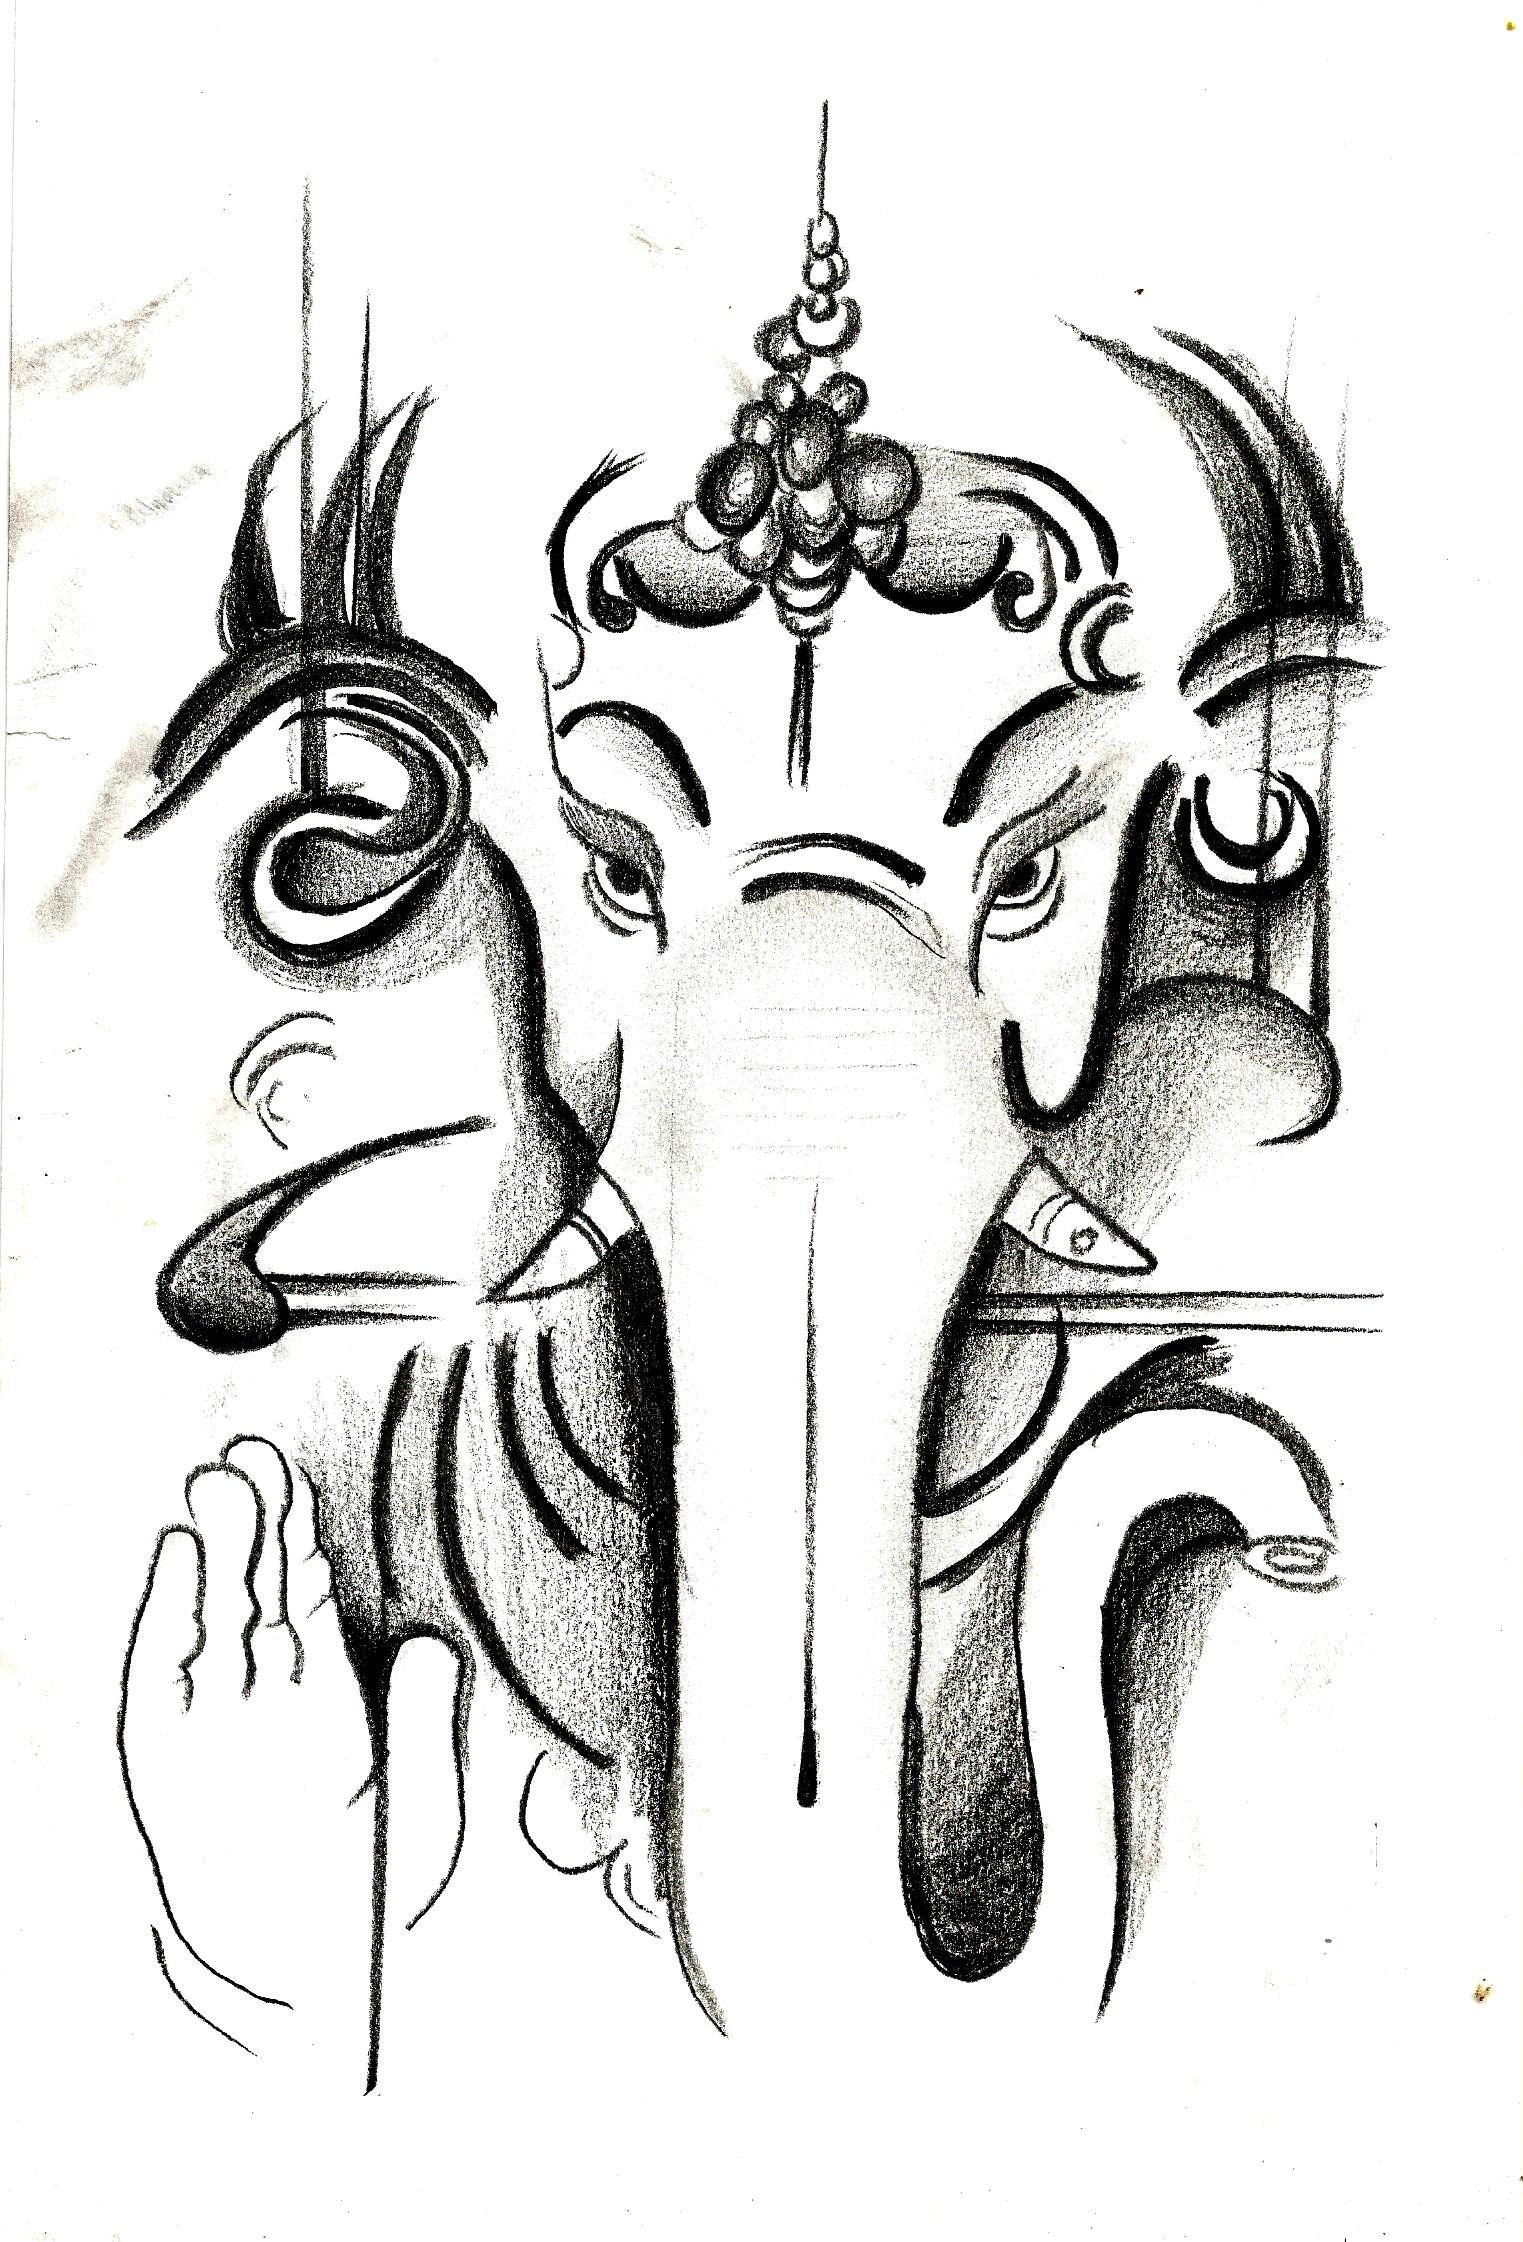 Excited To Share The Latest Addition To My Etsy Shop Lord Ganesh Https Etsy Me 2xxbuor Art Ganesh Art Portraiture Art